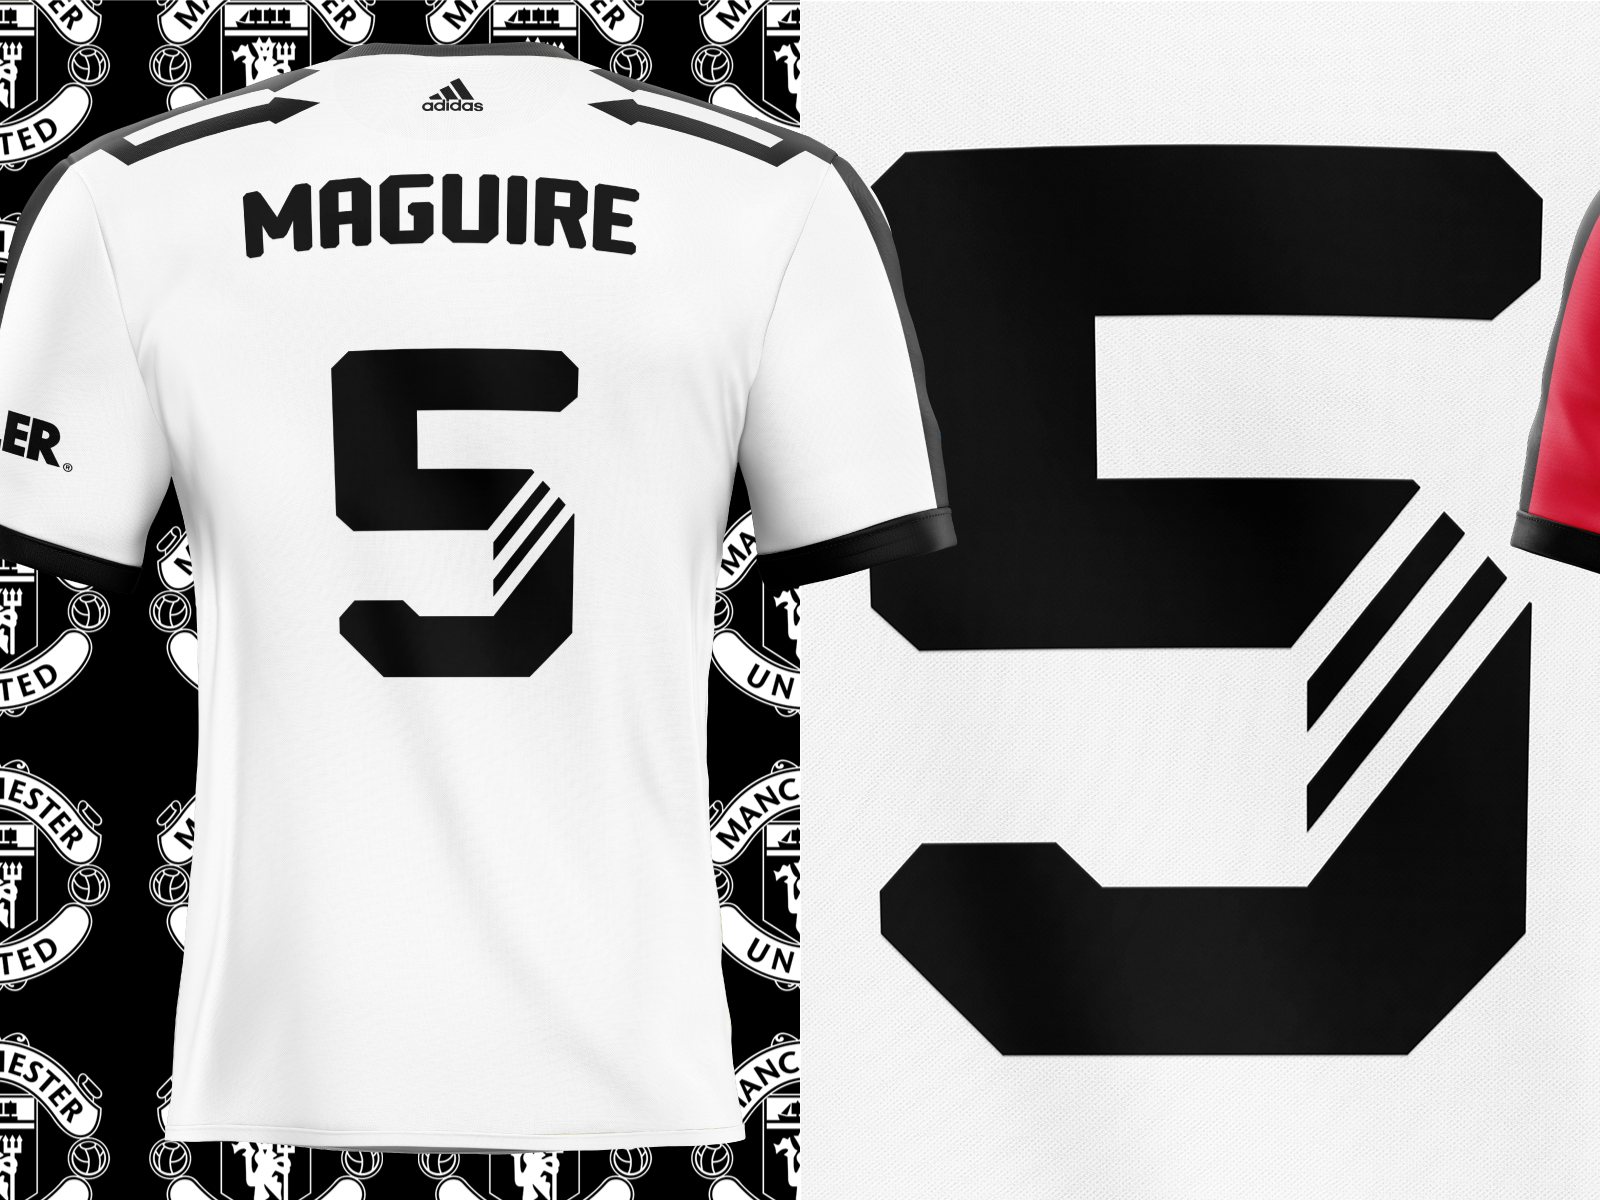 MUFC ADIDAS JERSEY DESIGNS by Alphabet Agency on Dribbble